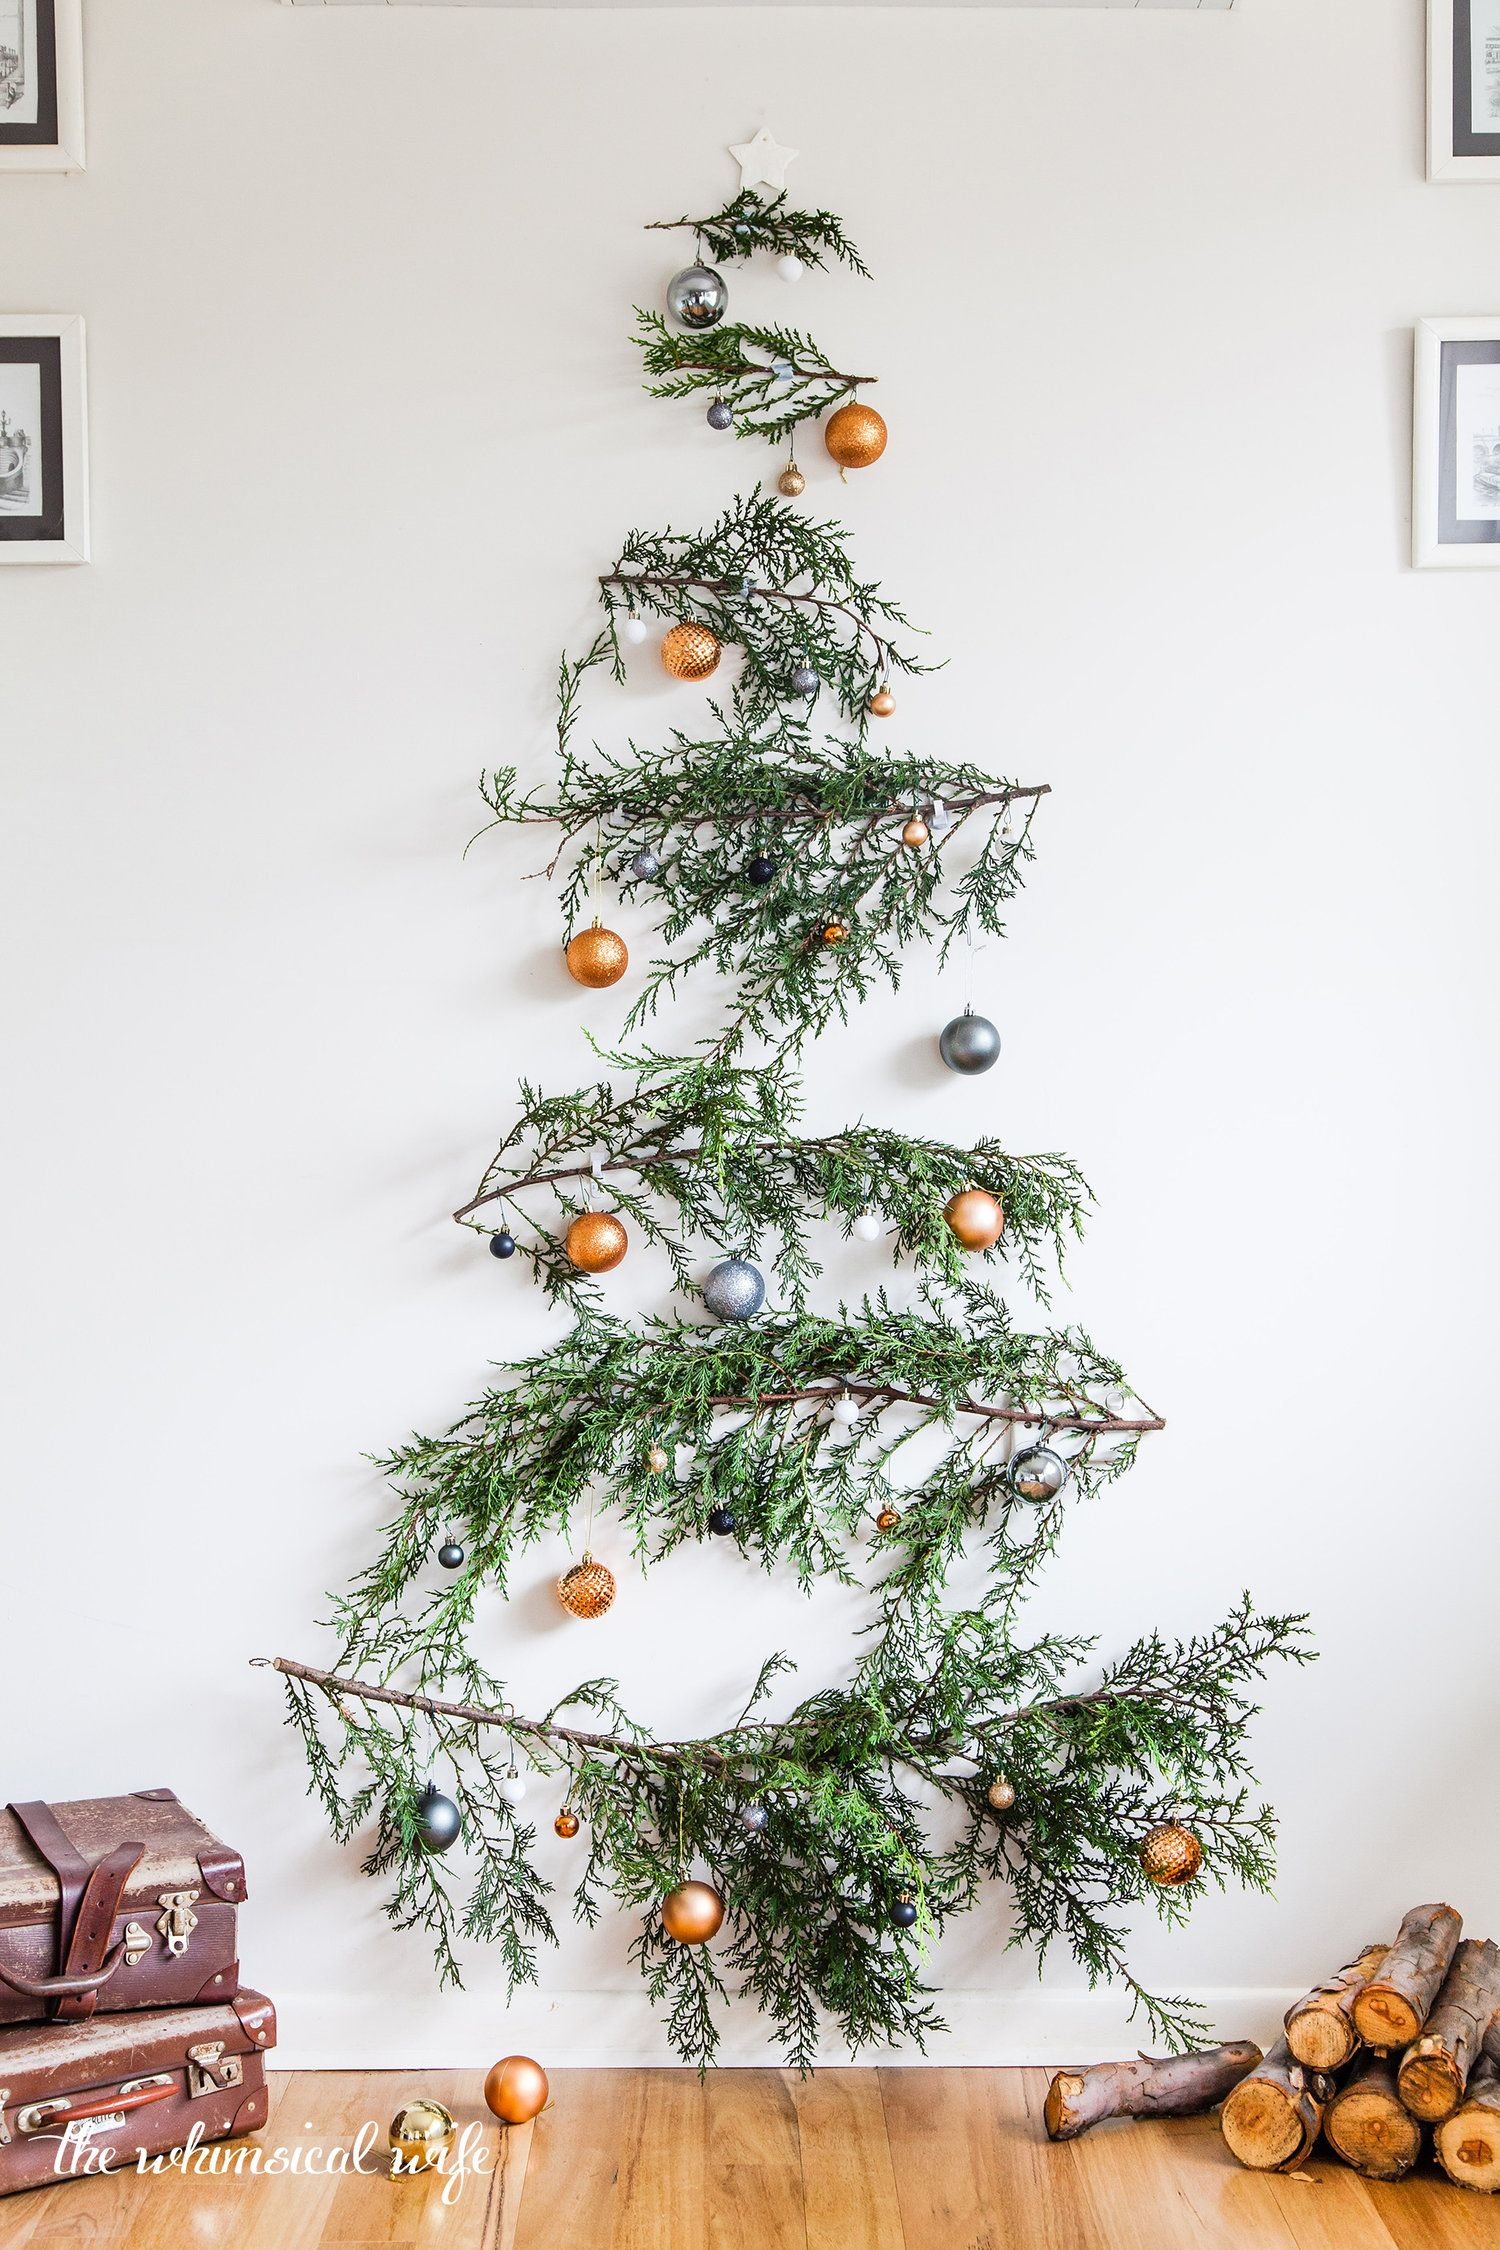 Quick Easy Diy Pine Branch Christmas Tree The Whimsical Wife Cook Create Decorate Diy Christmas Tree Wall Christmas Tree Christmas Wall Decor